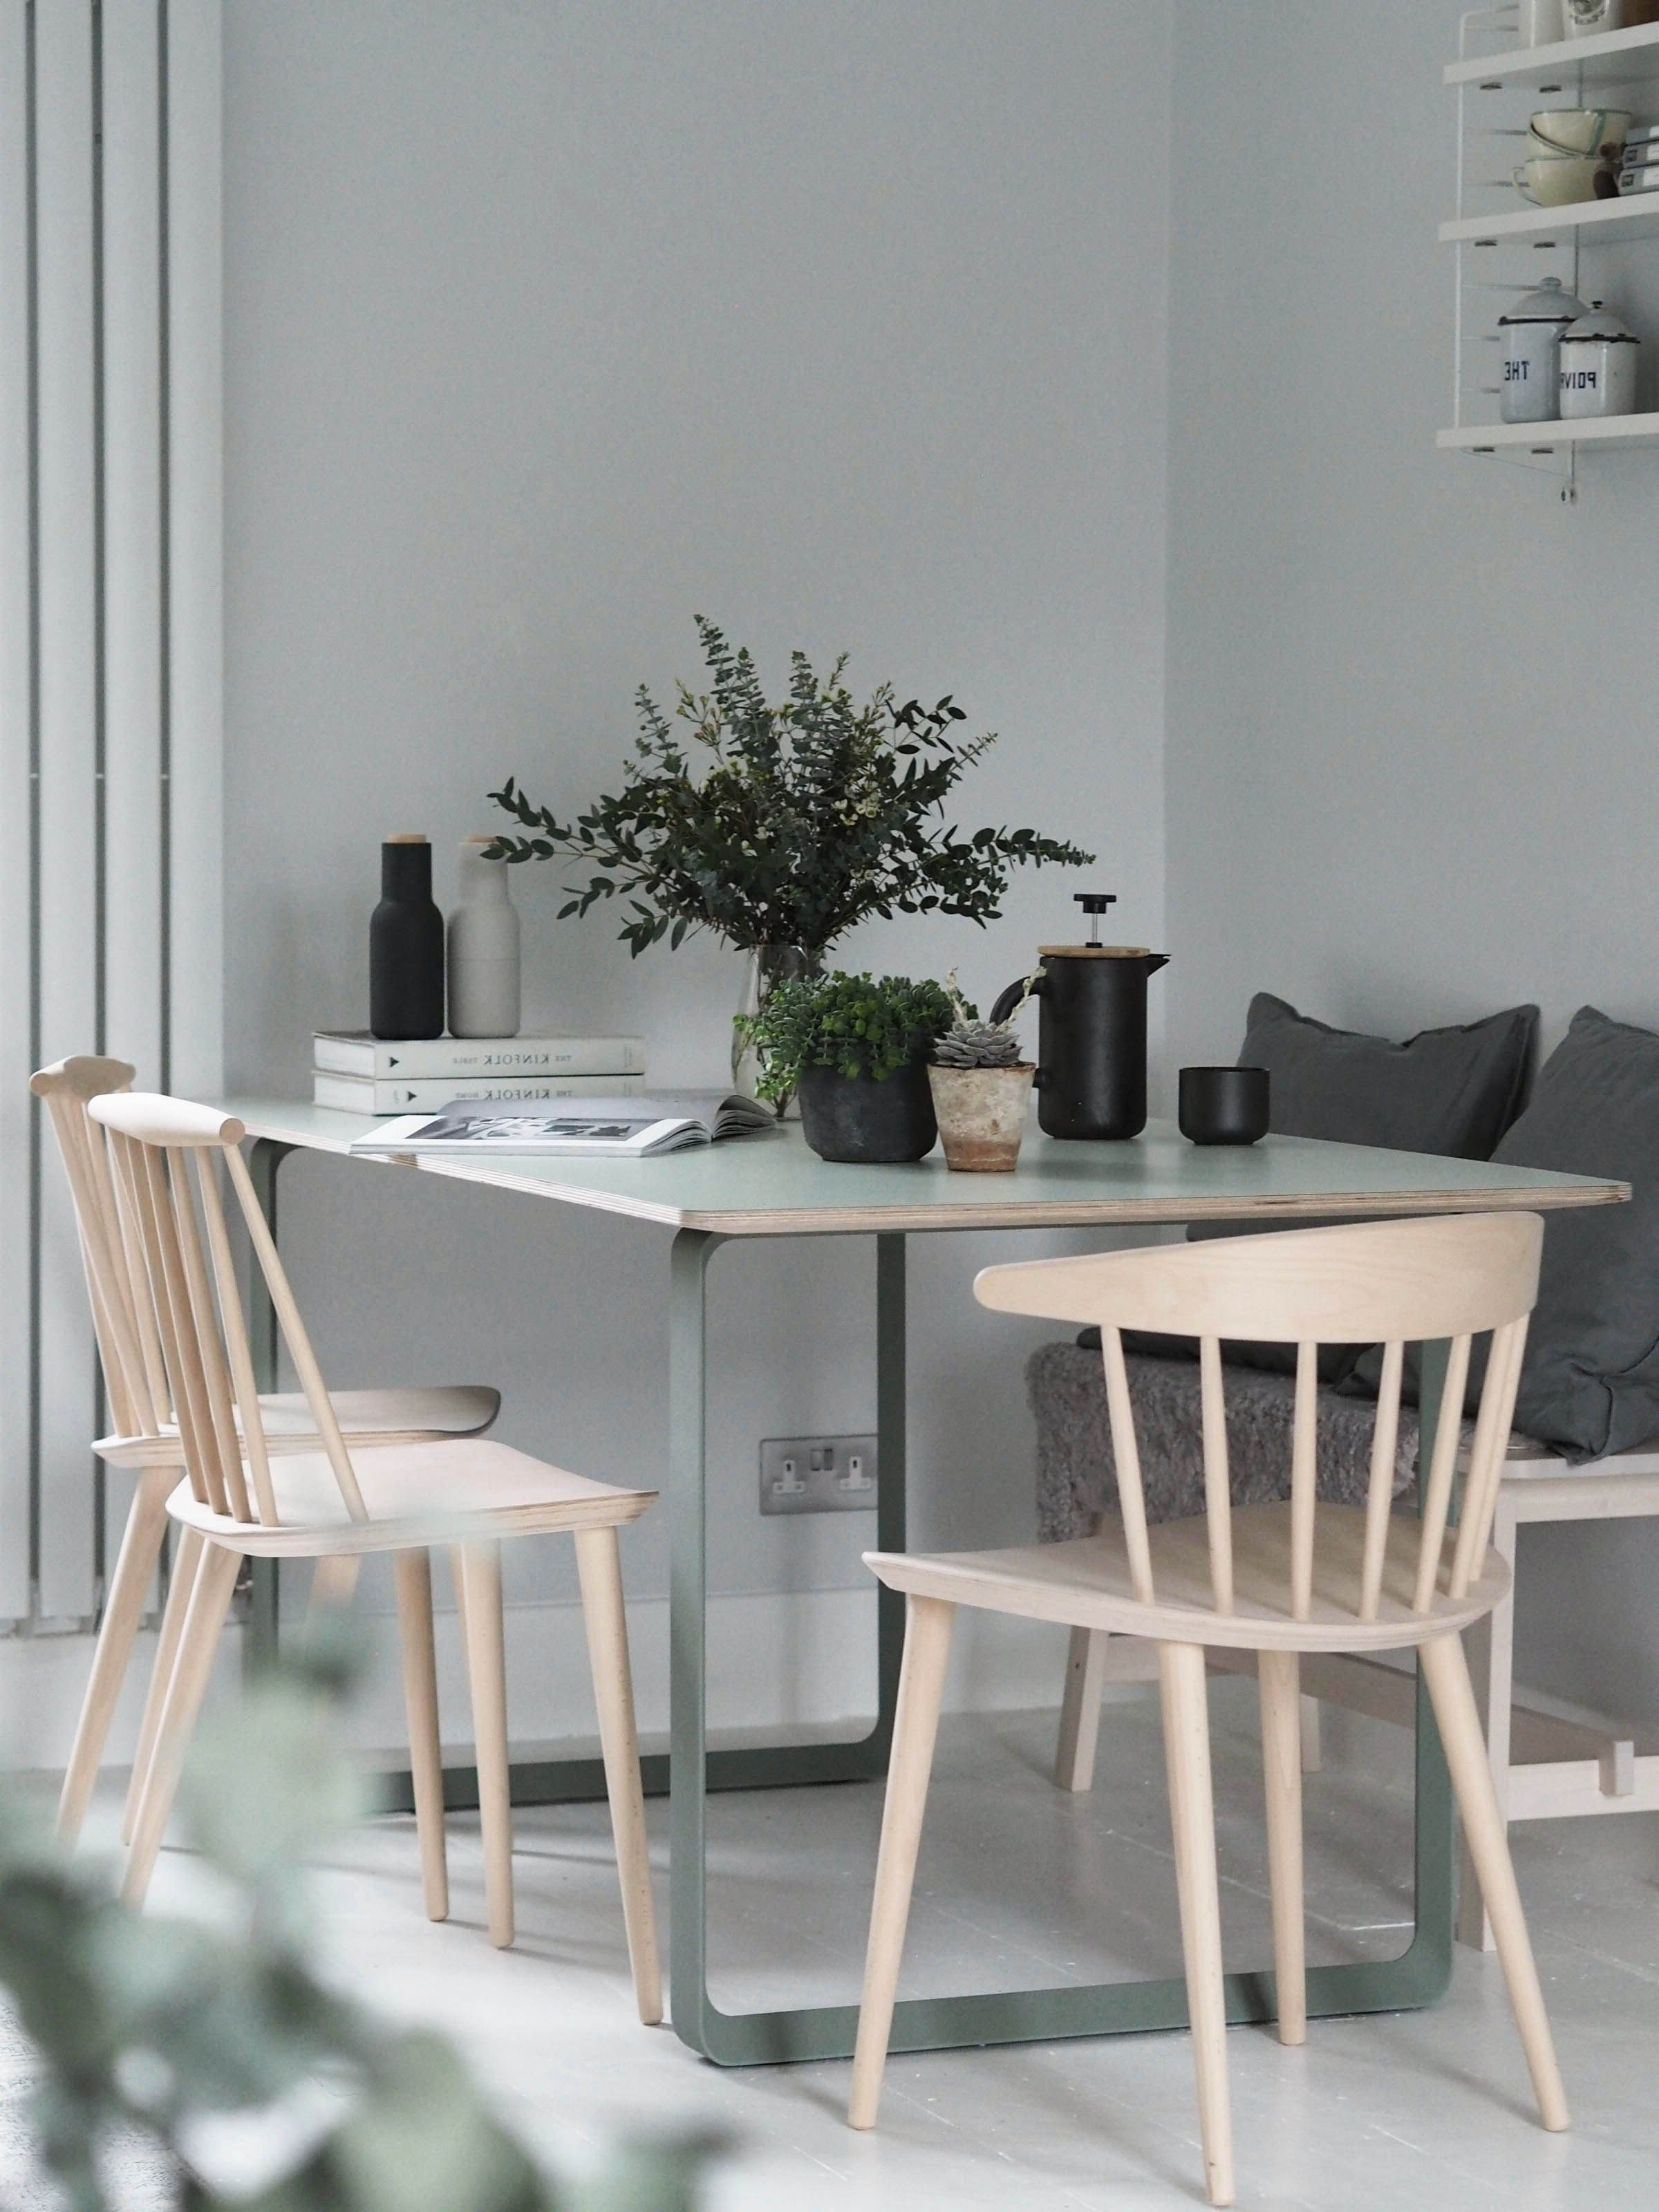 Famous My Muuto 70/70 Table – Modern Scandinavian Design Dining Table (View 6 of 25)